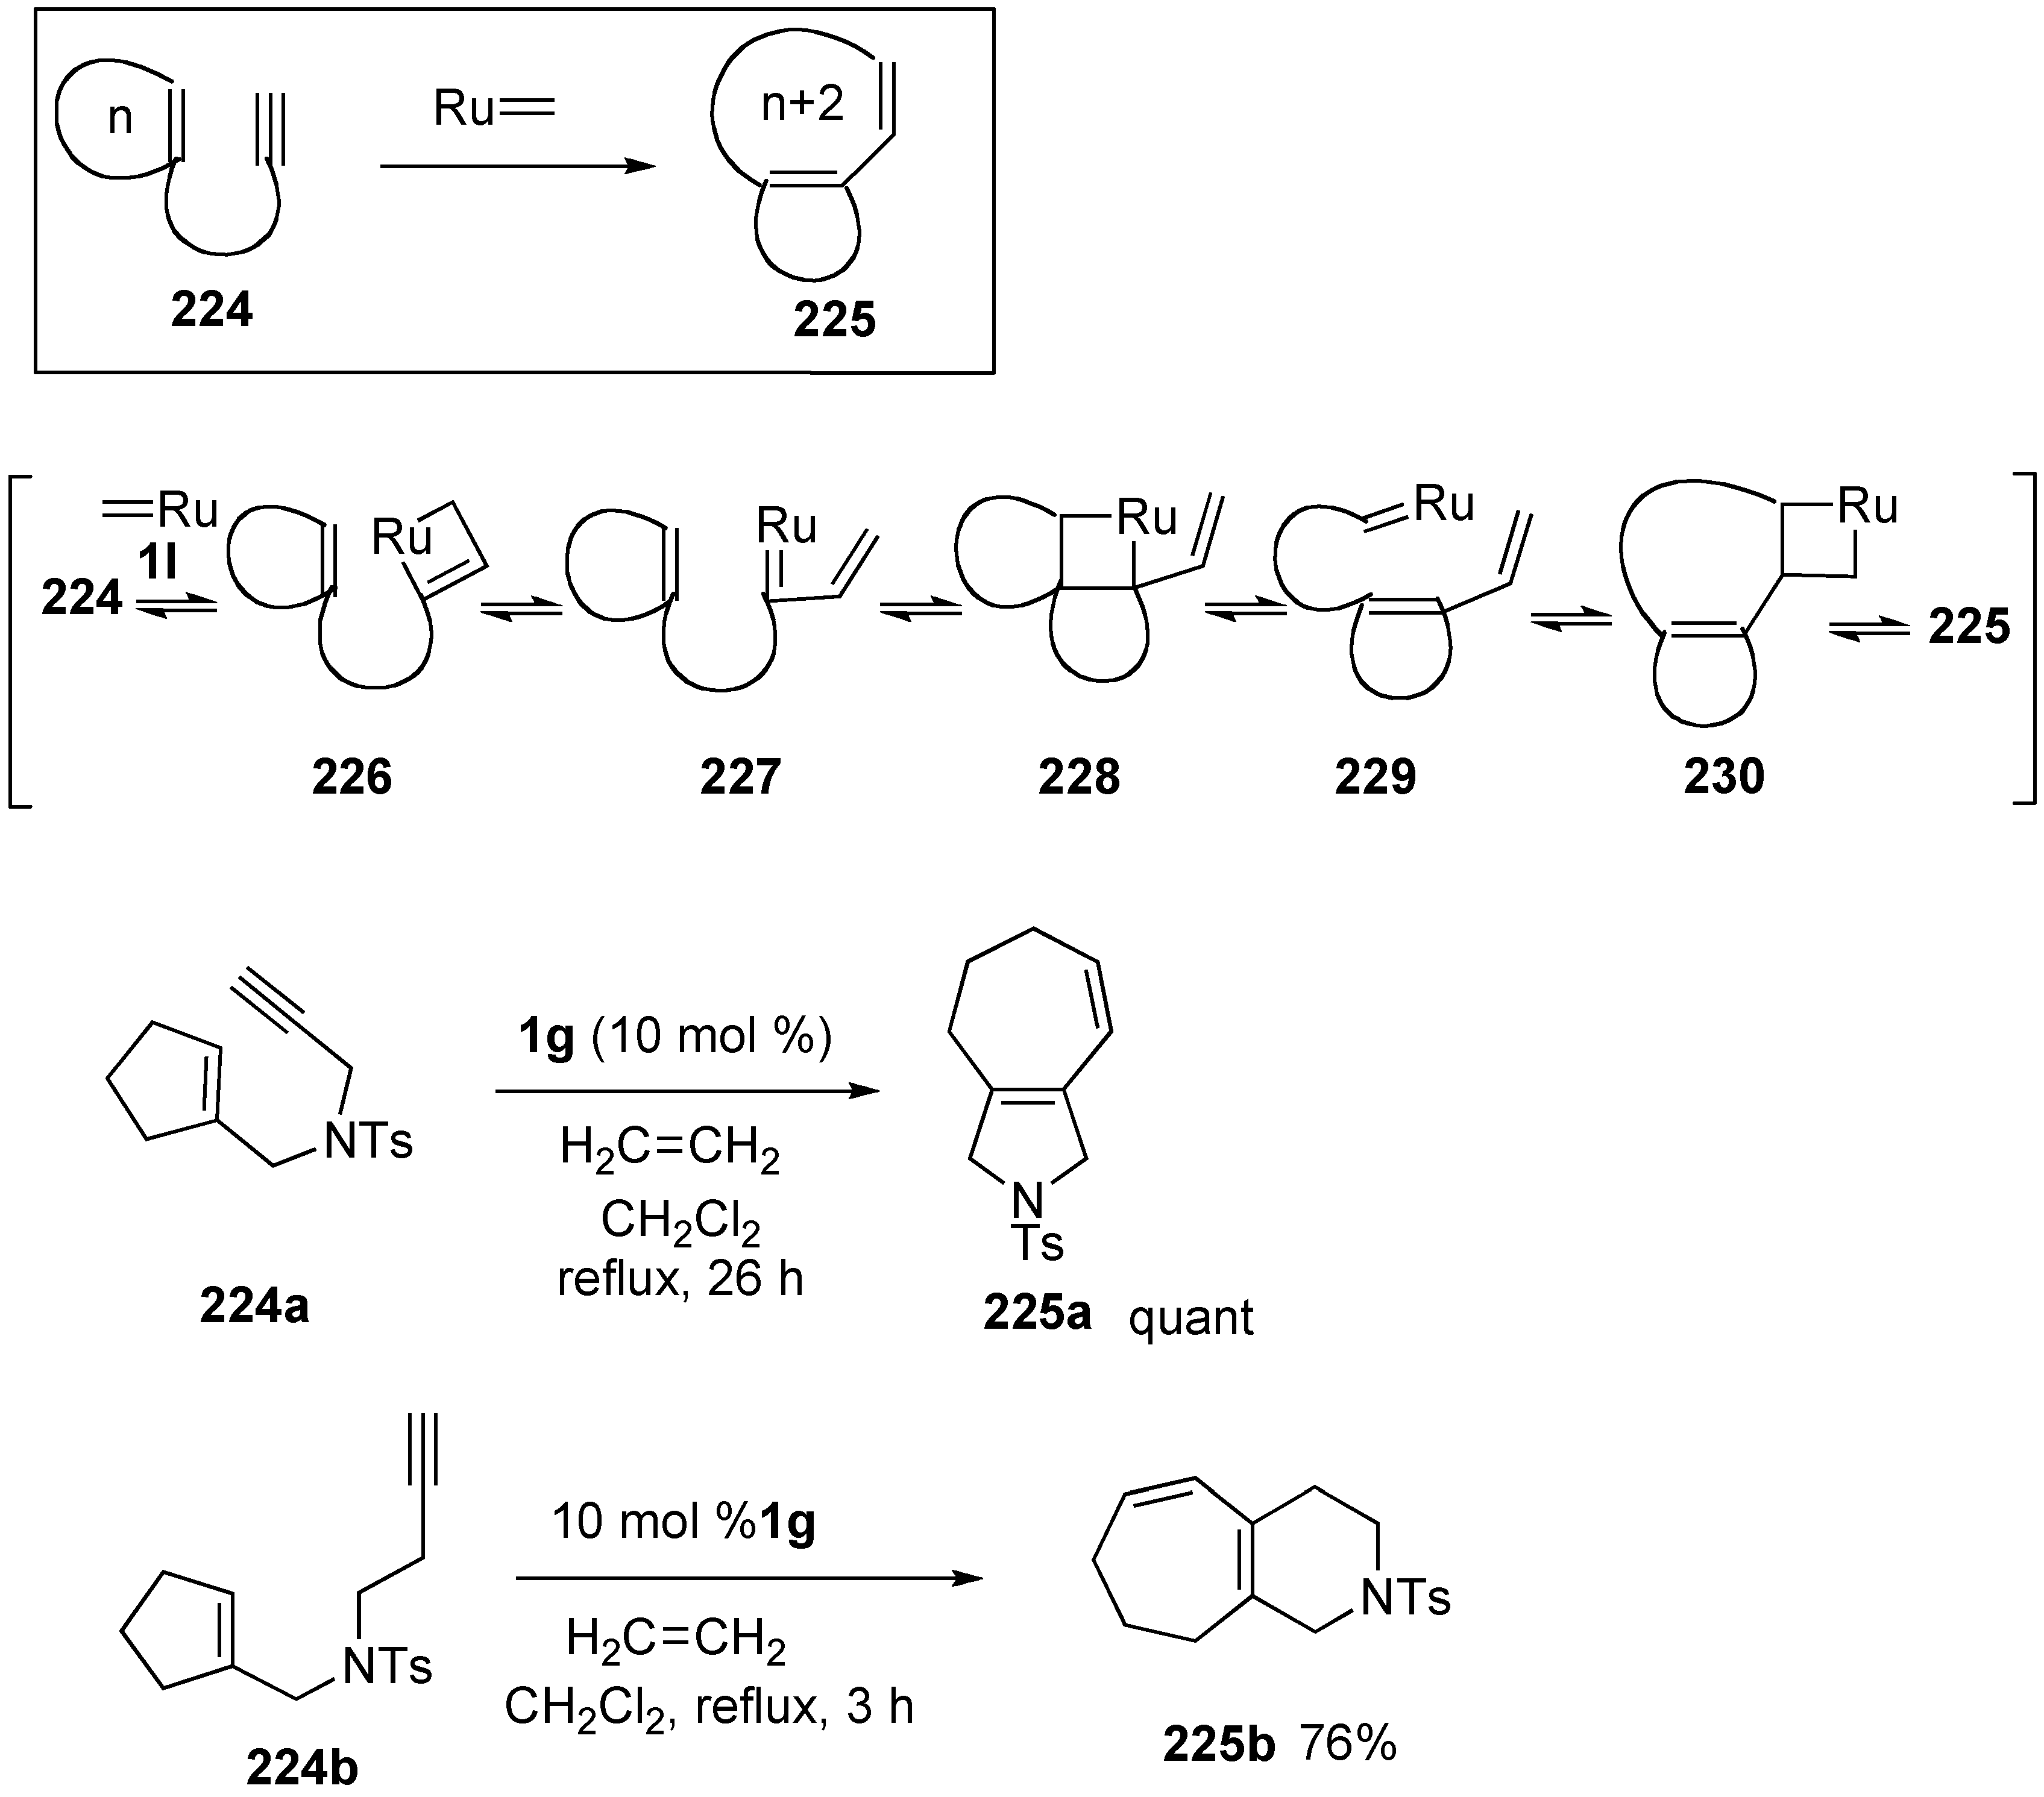 enyne metathesis review This chapter review describes the use of enyne metathesis as a valid and versatile reaction for the synthesis of small ring (5-, 6-membered rings.